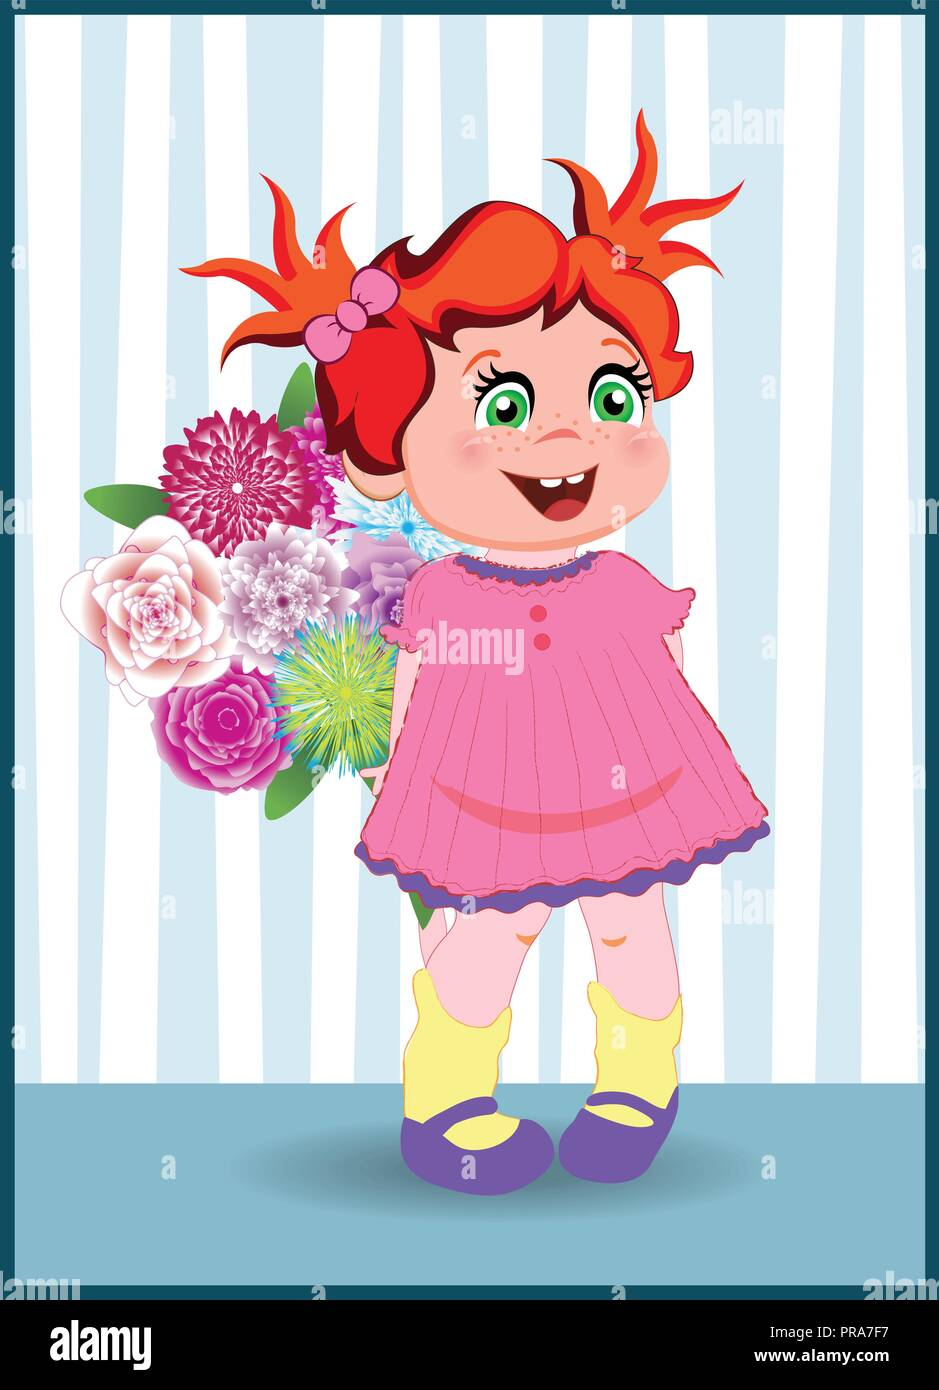 Vector Illustration Of Cute Cartoon Little Girl Character With